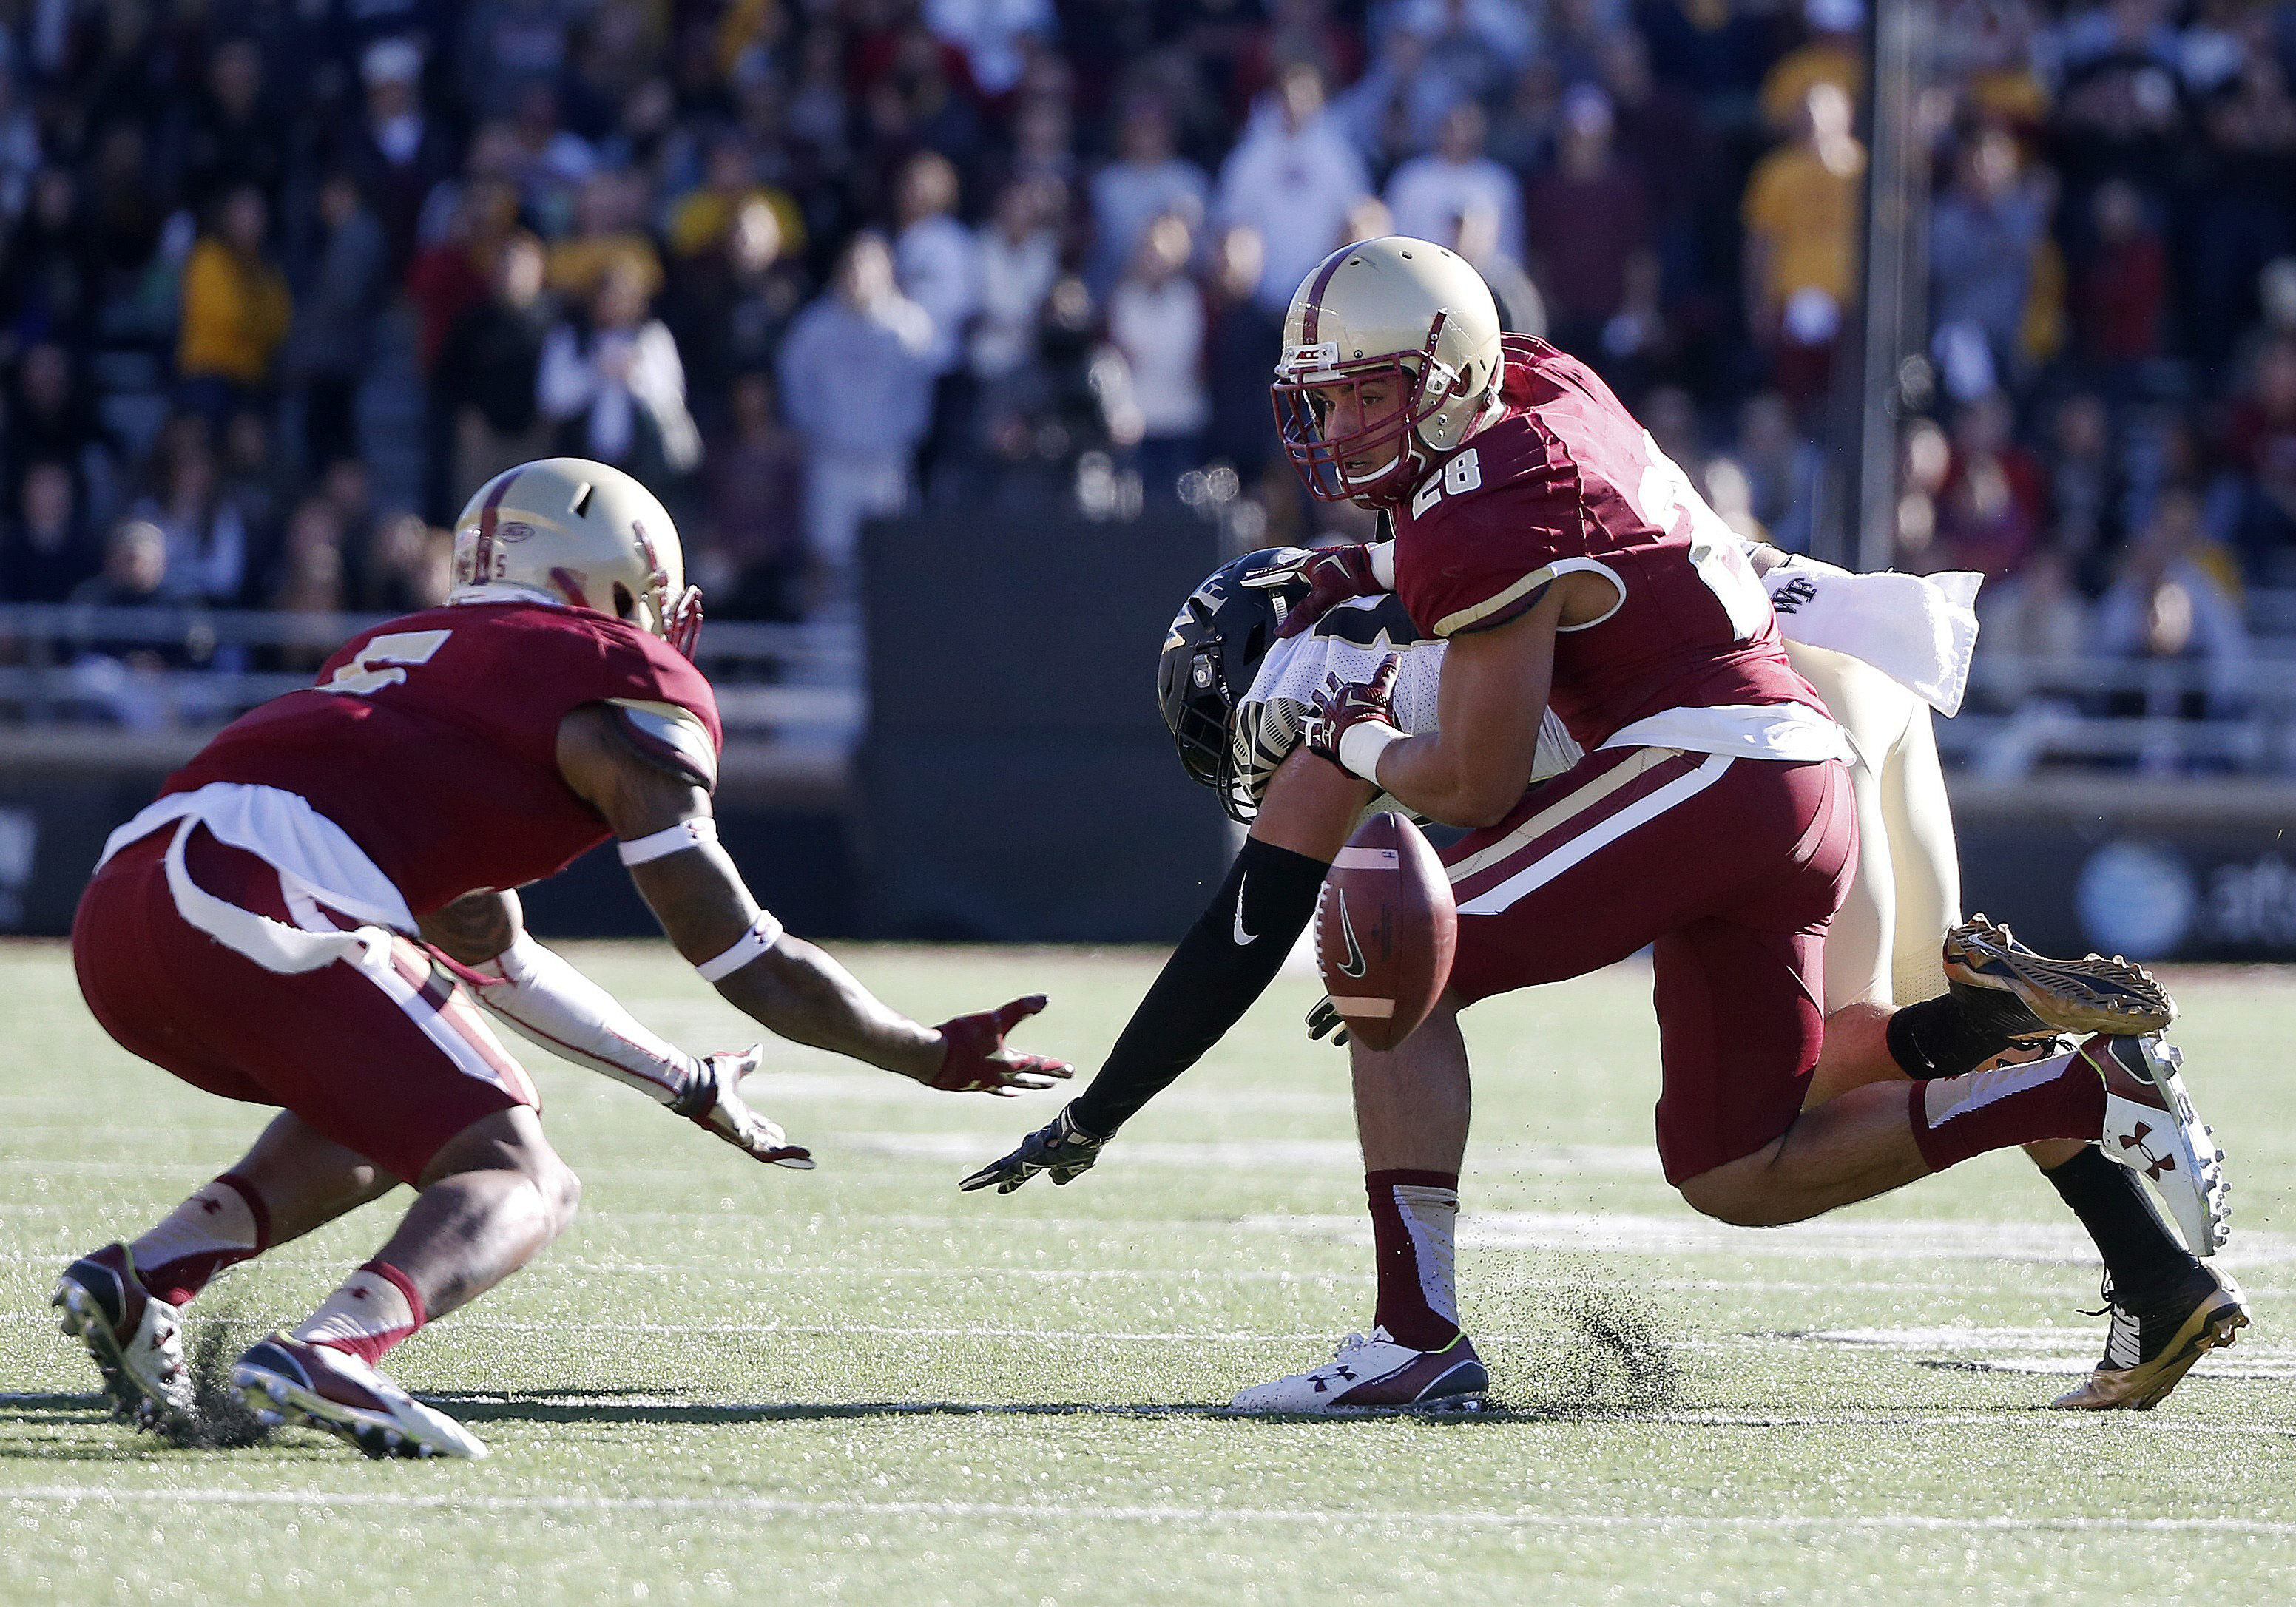 Boston College linebacker Matt Milano (28) breaks up a pass intended for Wake Forest wide receiver K.J. Brent, behind, during the second quarter of an NCAA college football game in Boston, Saturday, Oct. 10, 2015. (AP Photo/Michael Dwyer)